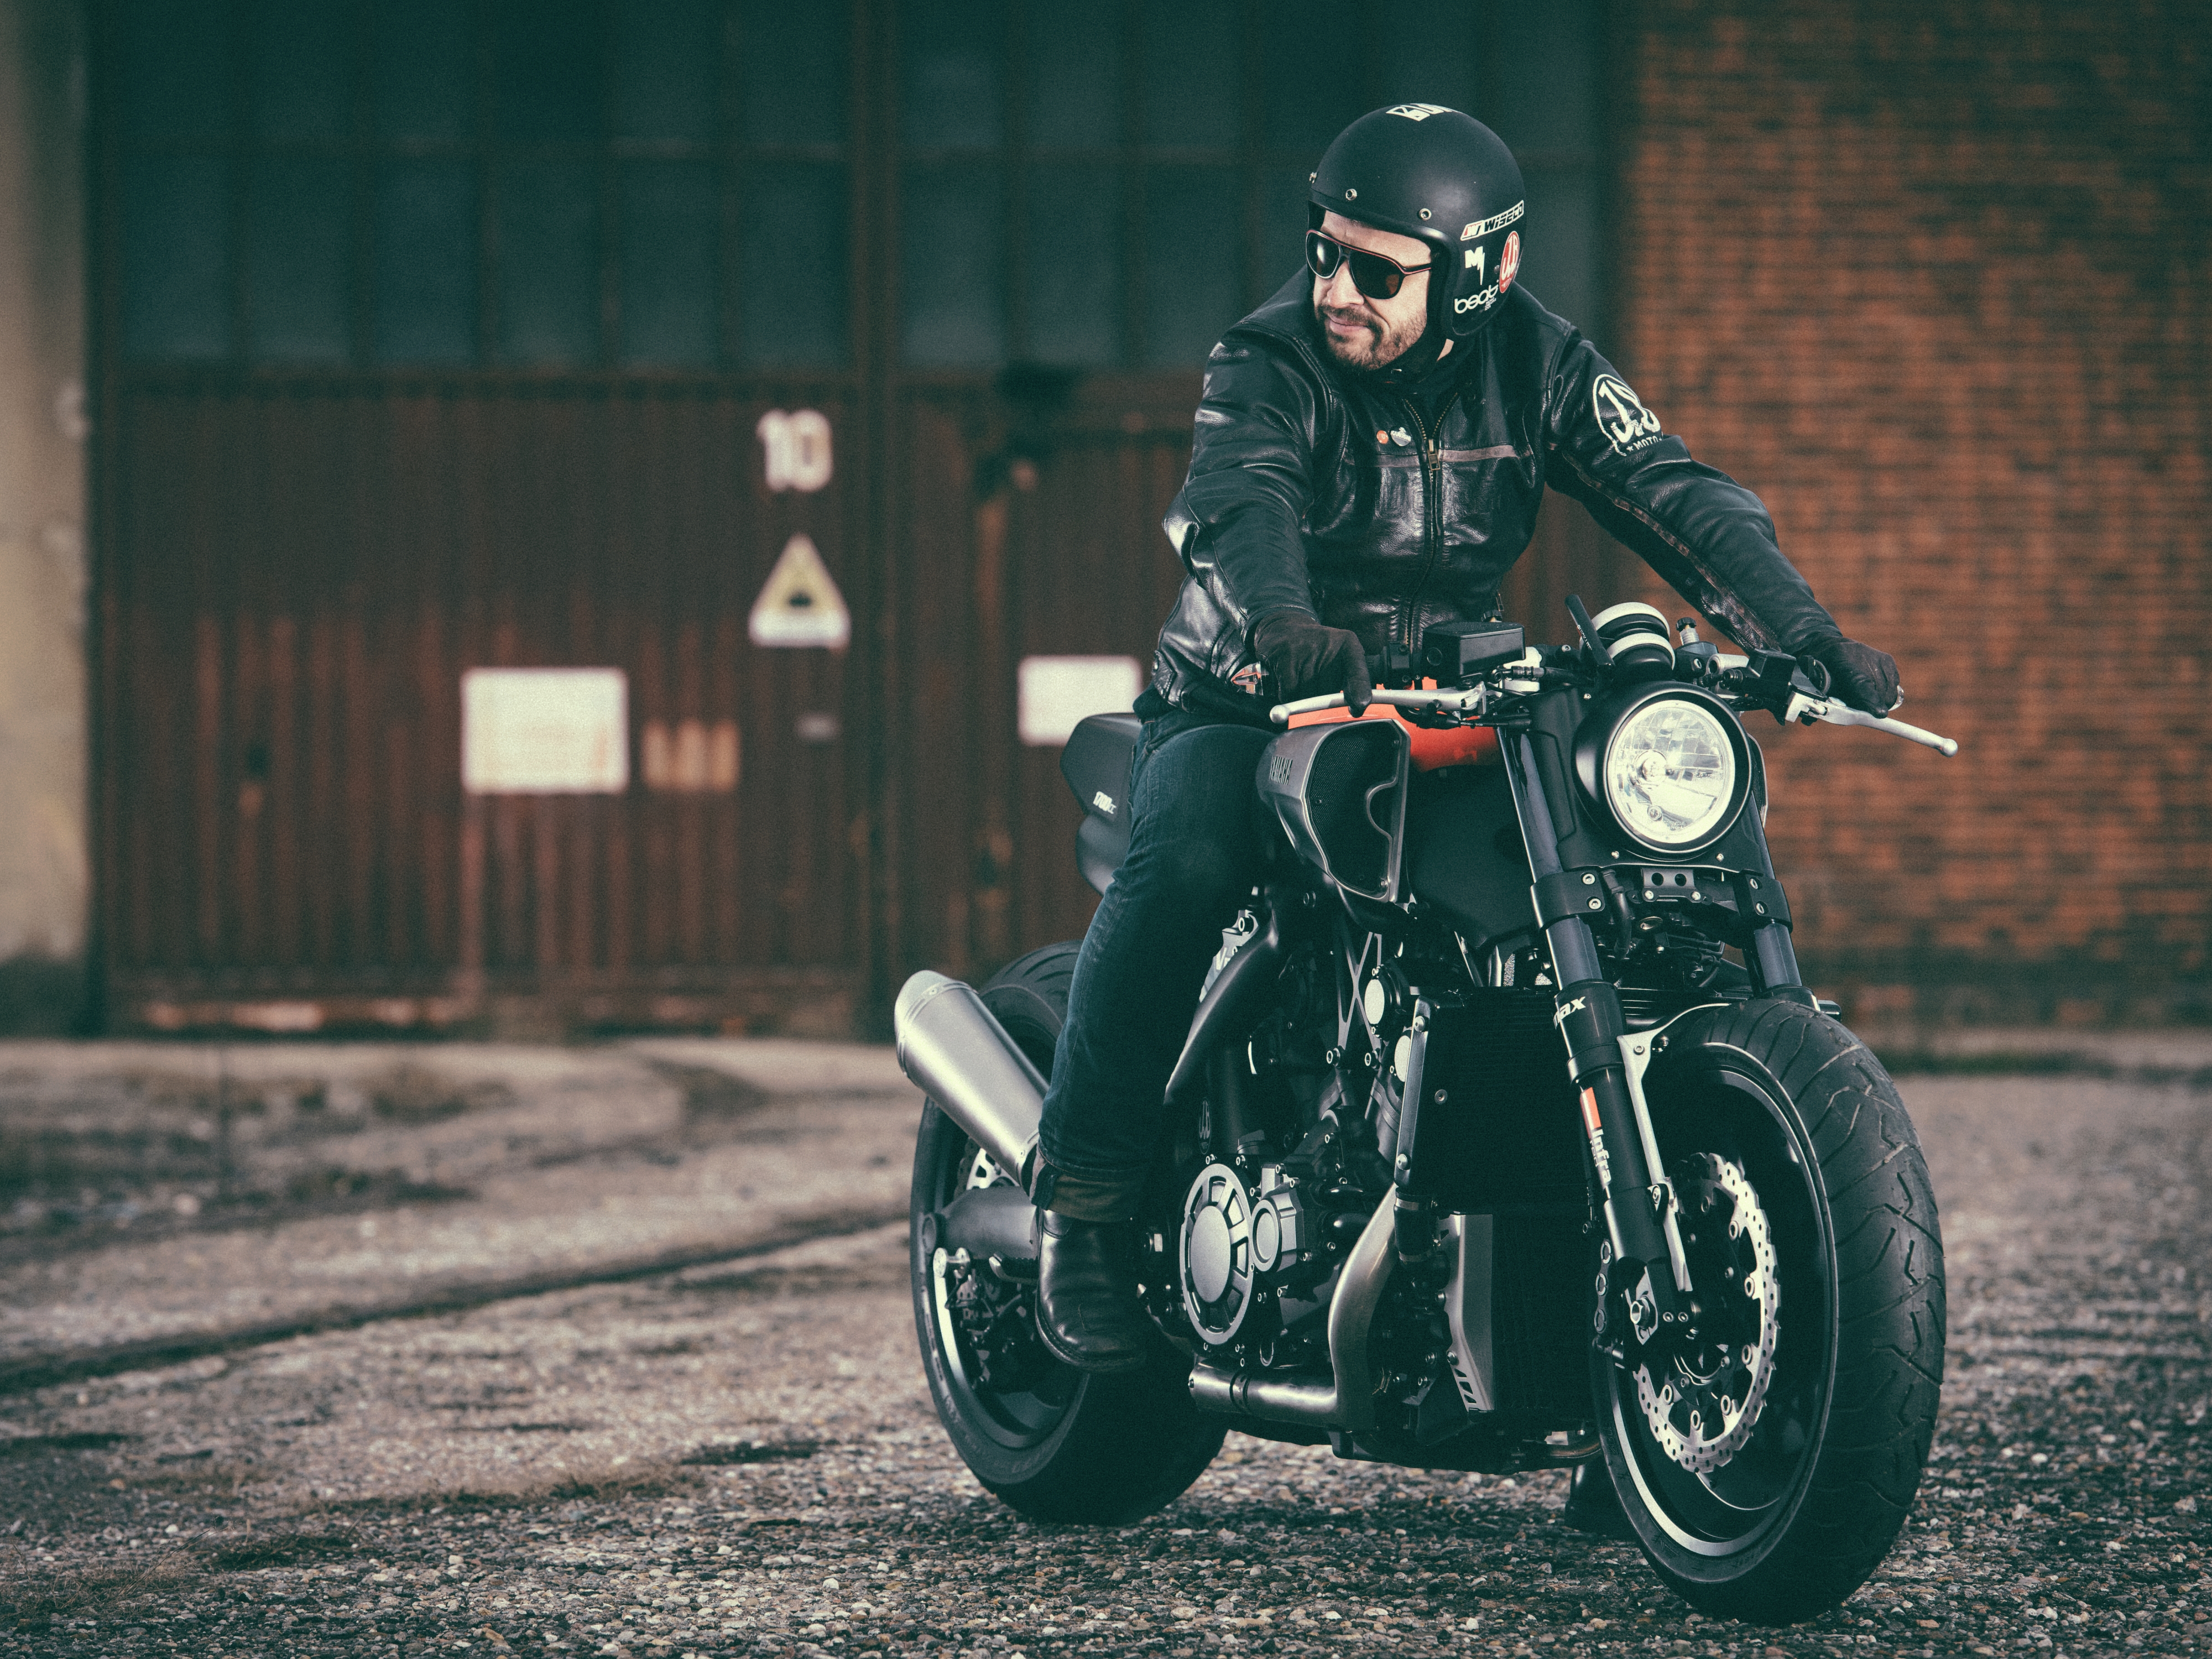 yamaha's yard built vmax 'infrared' | visordown